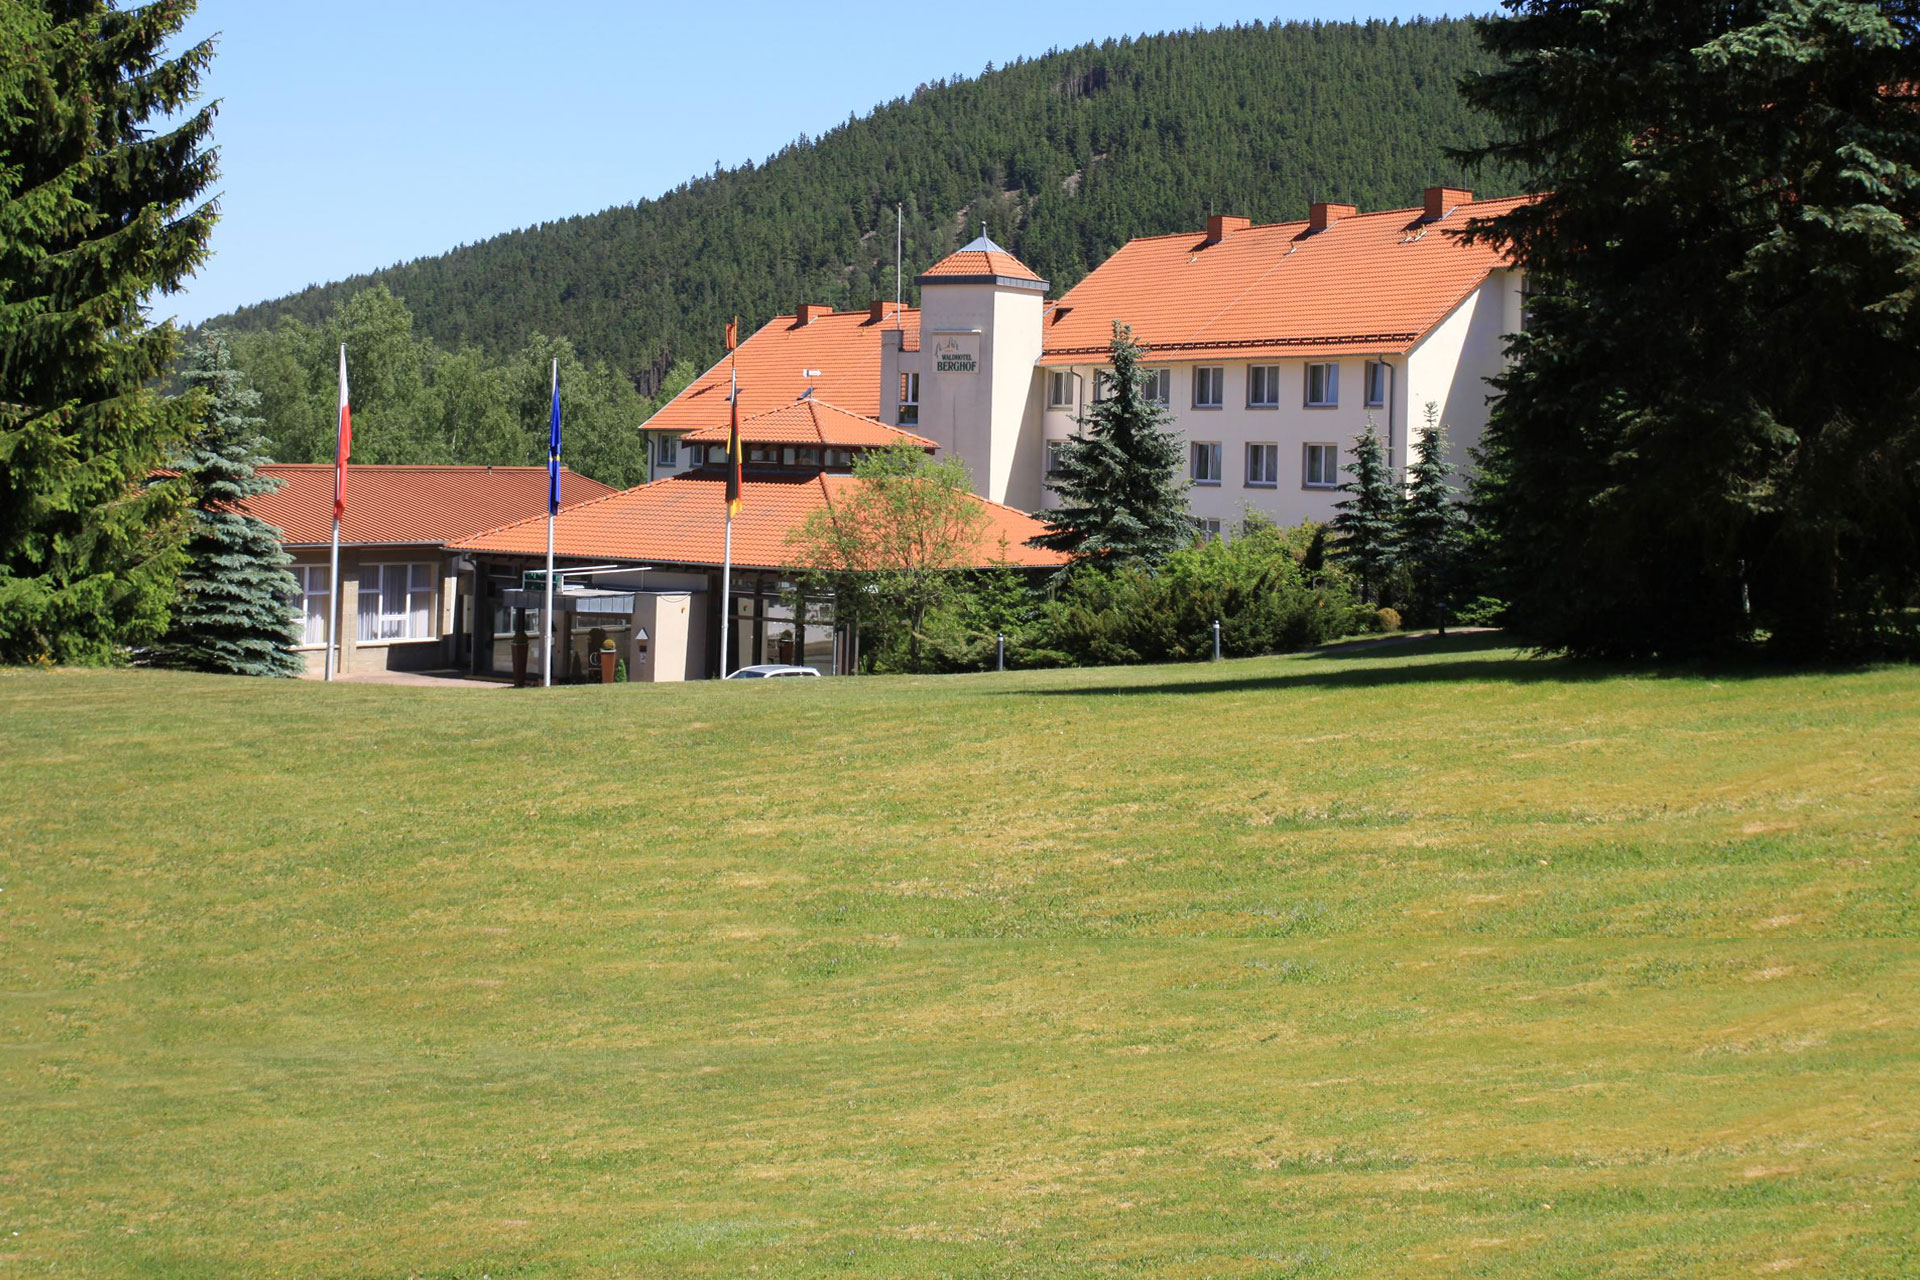 Waldhotel Berghof in Luisenthal in summer